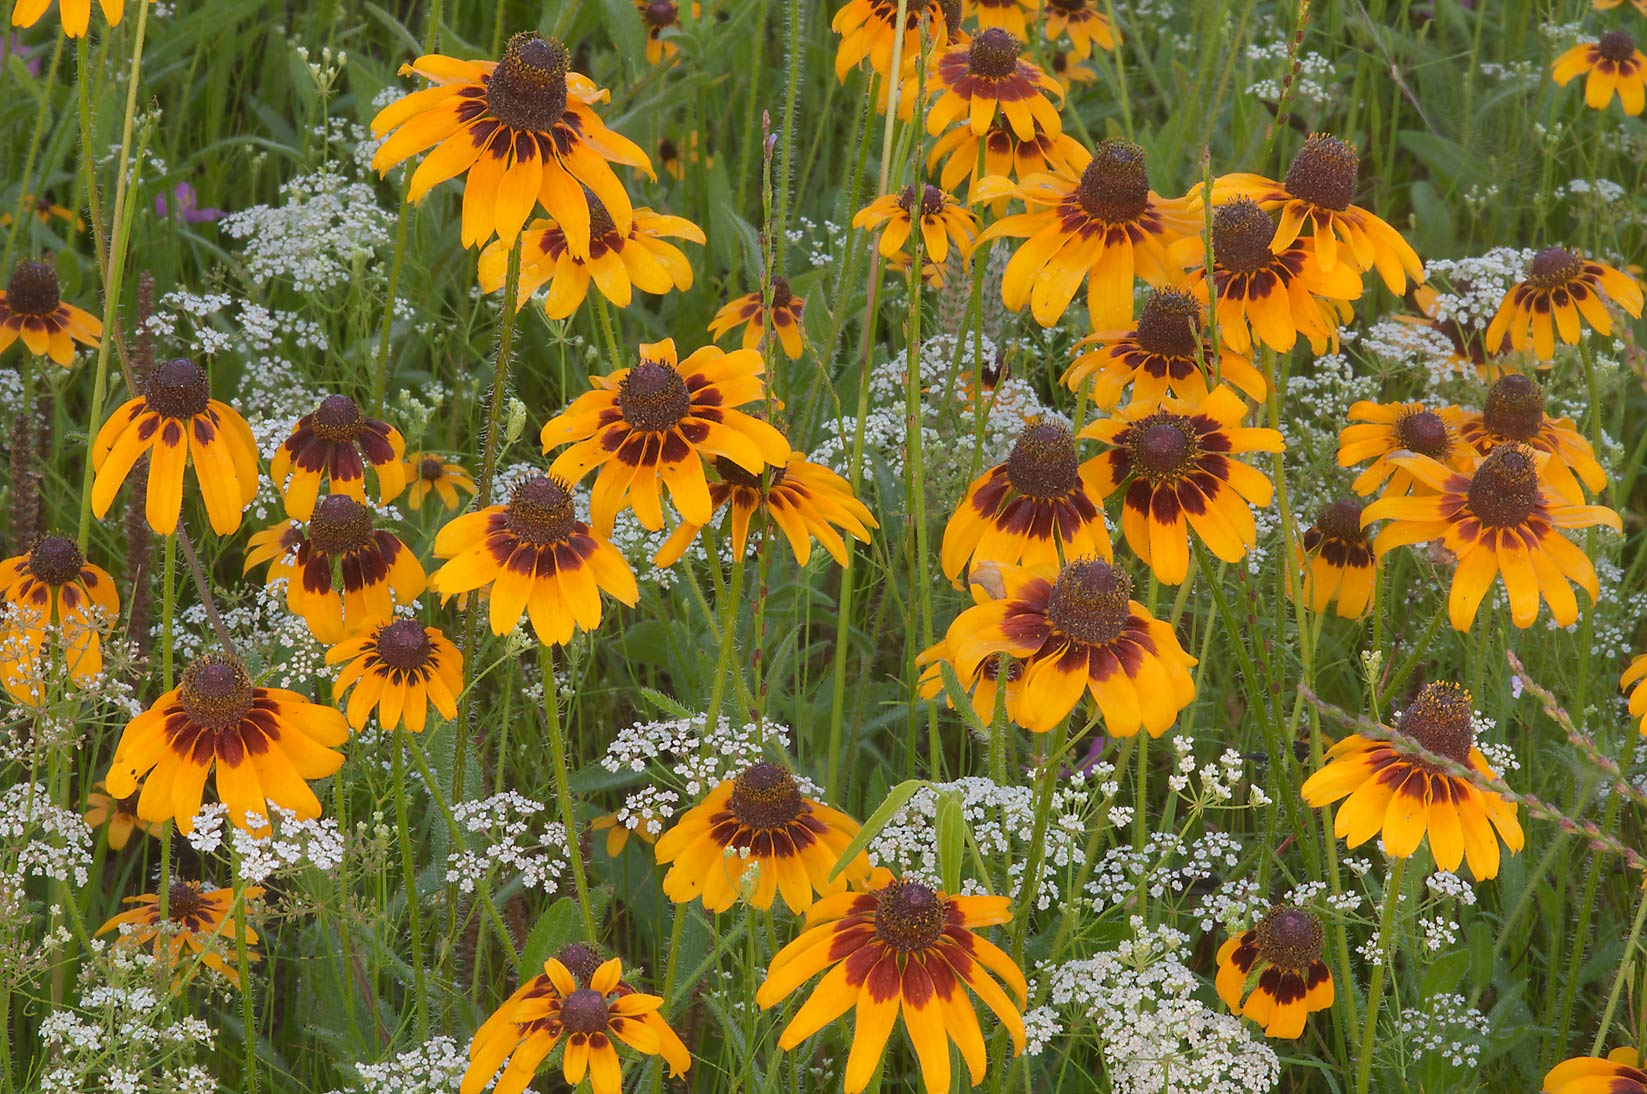 Black-eyed susan flowers at Post Oak Trail in Lick Creek Park. College Station, Texas